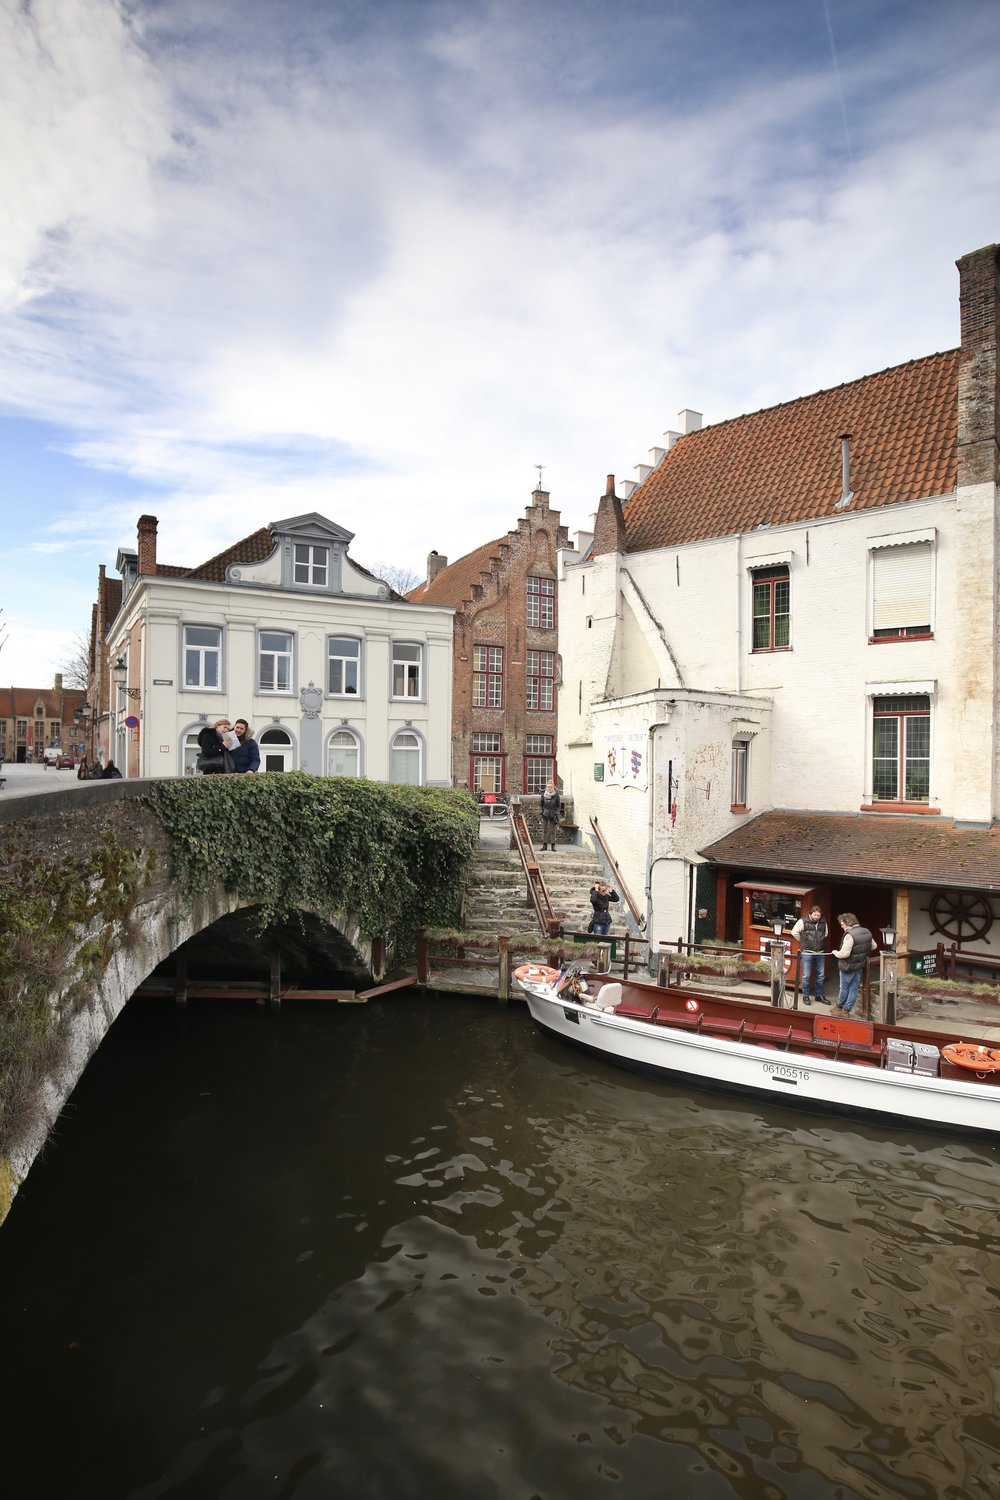 A bridge over a canal in Bruges.